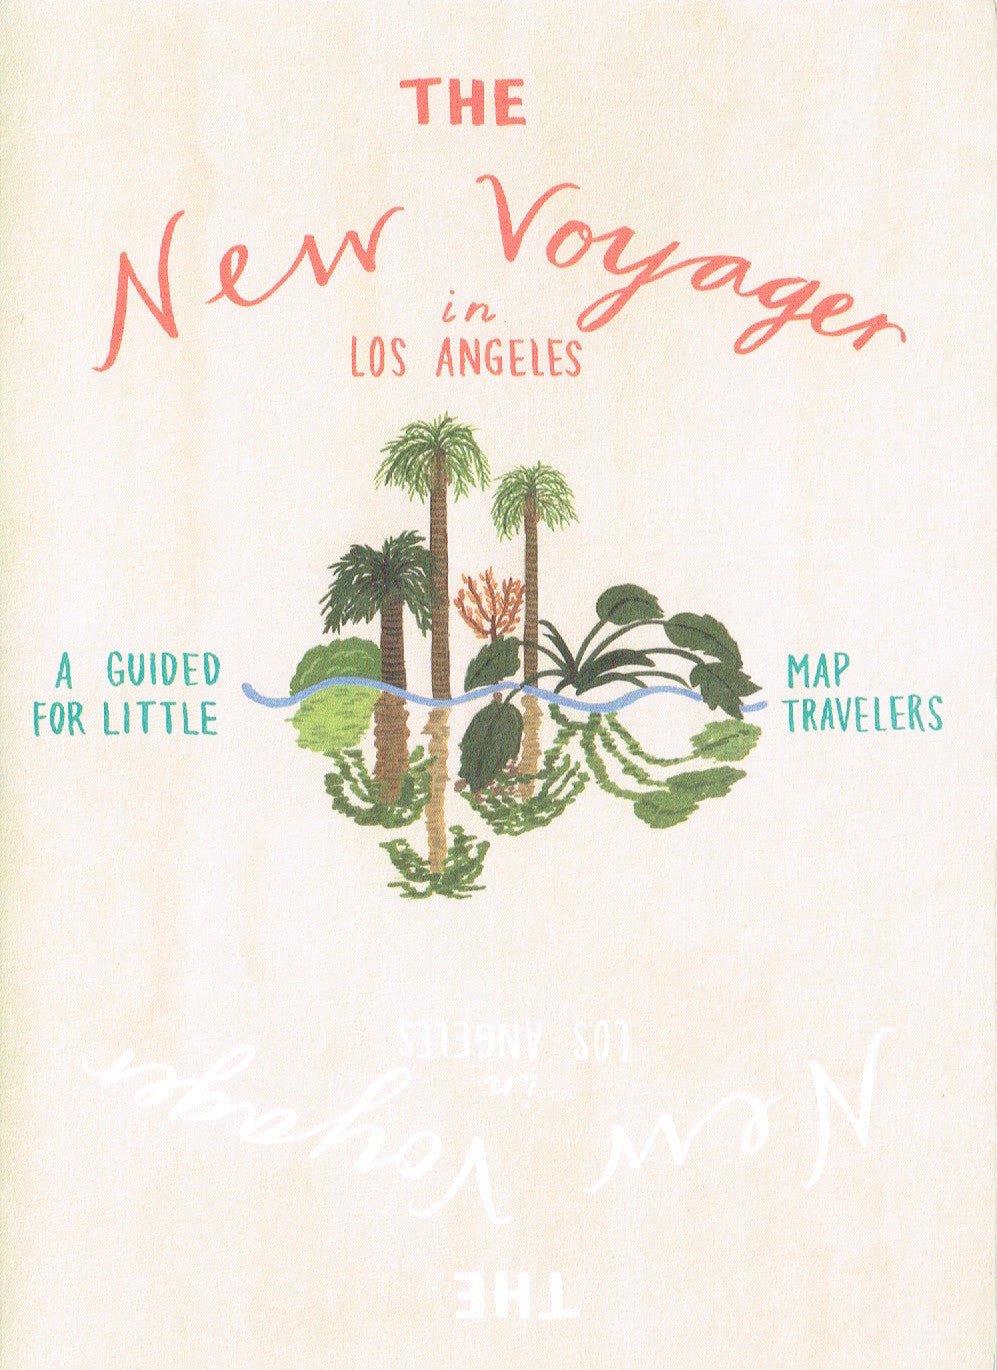 THE NEW VOYAGER IN LOS ANGELES